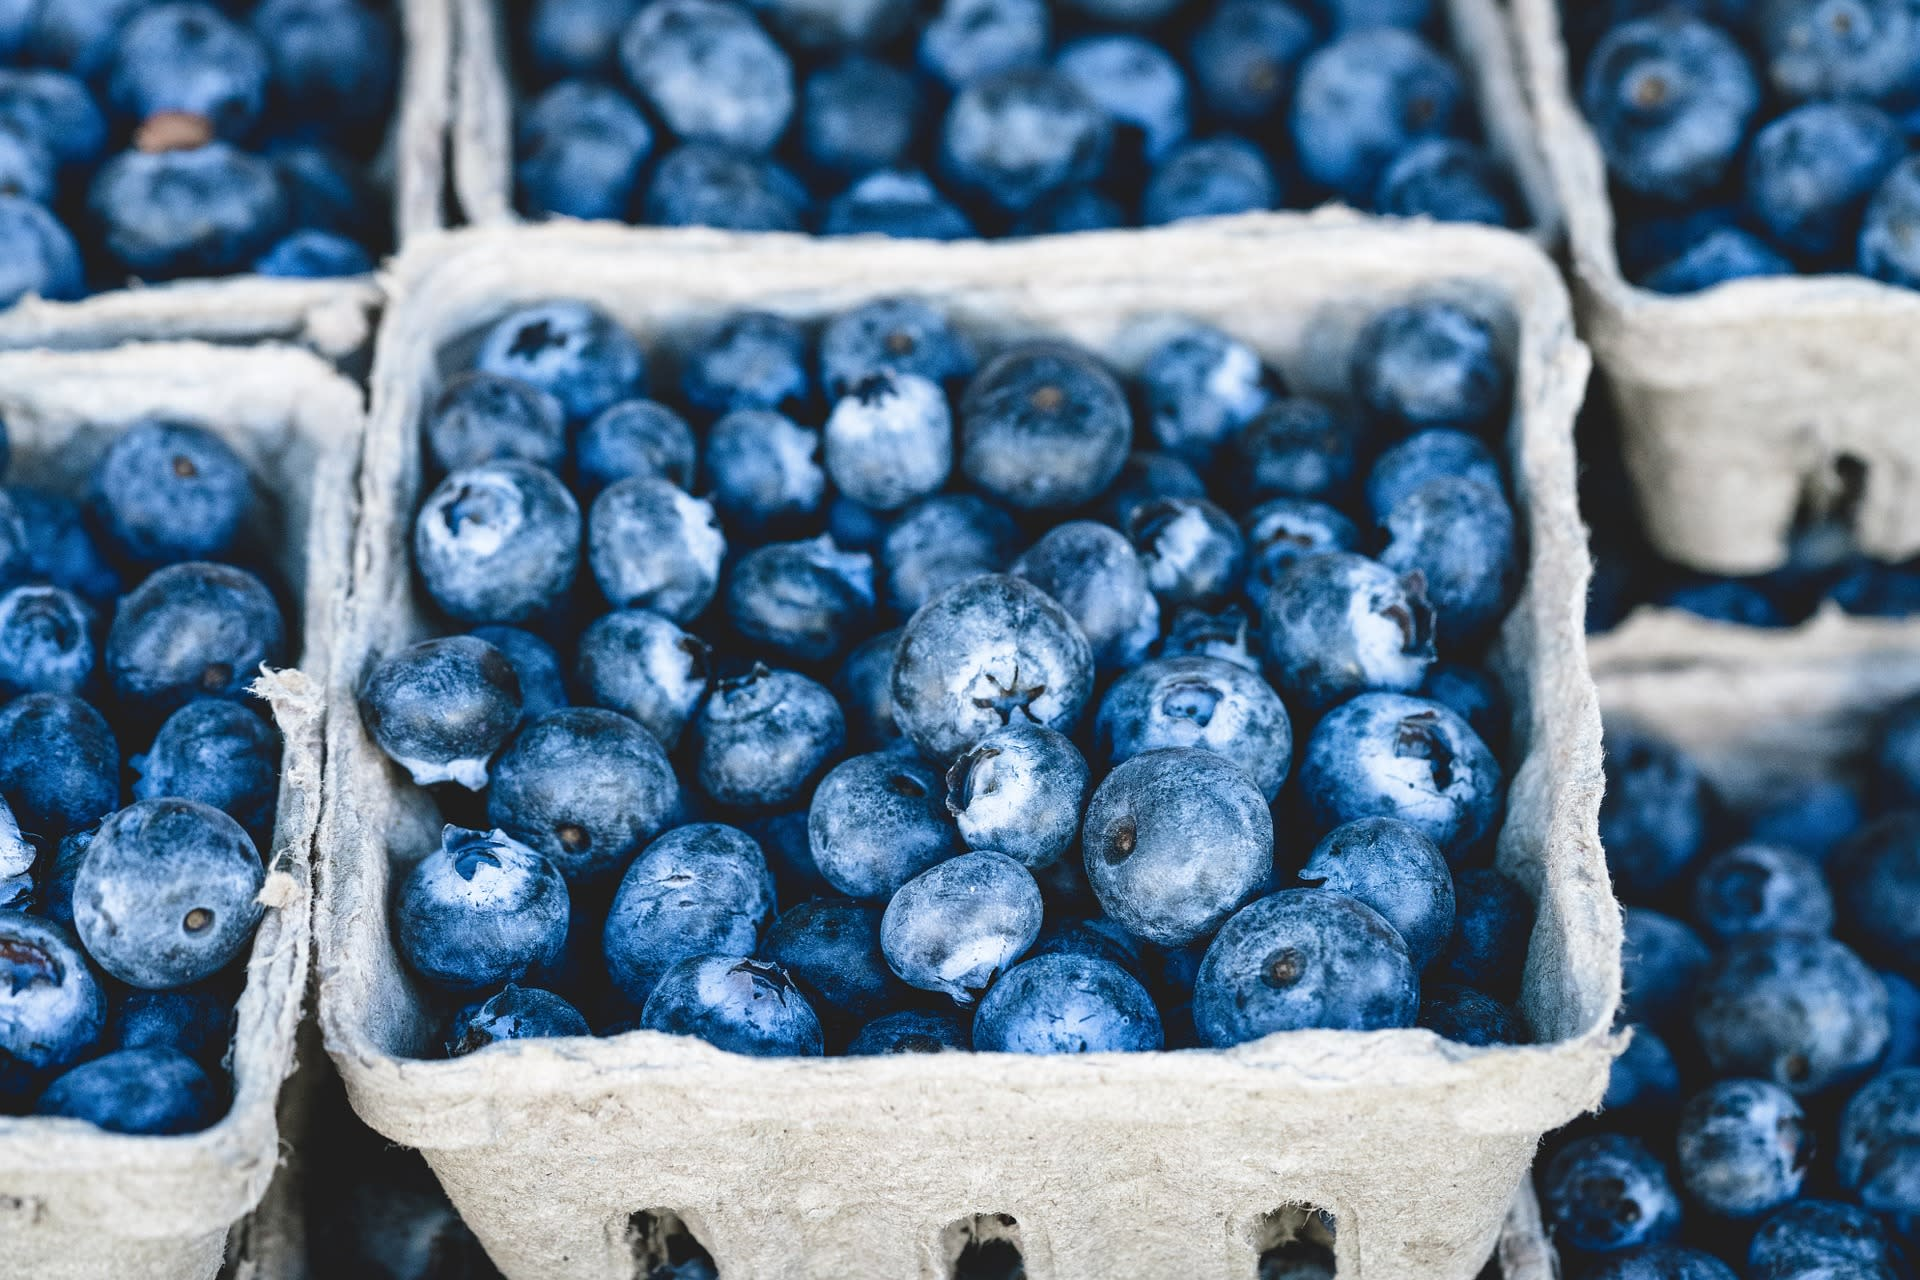 11th Annual Blueberry Festival at Keel & Curley